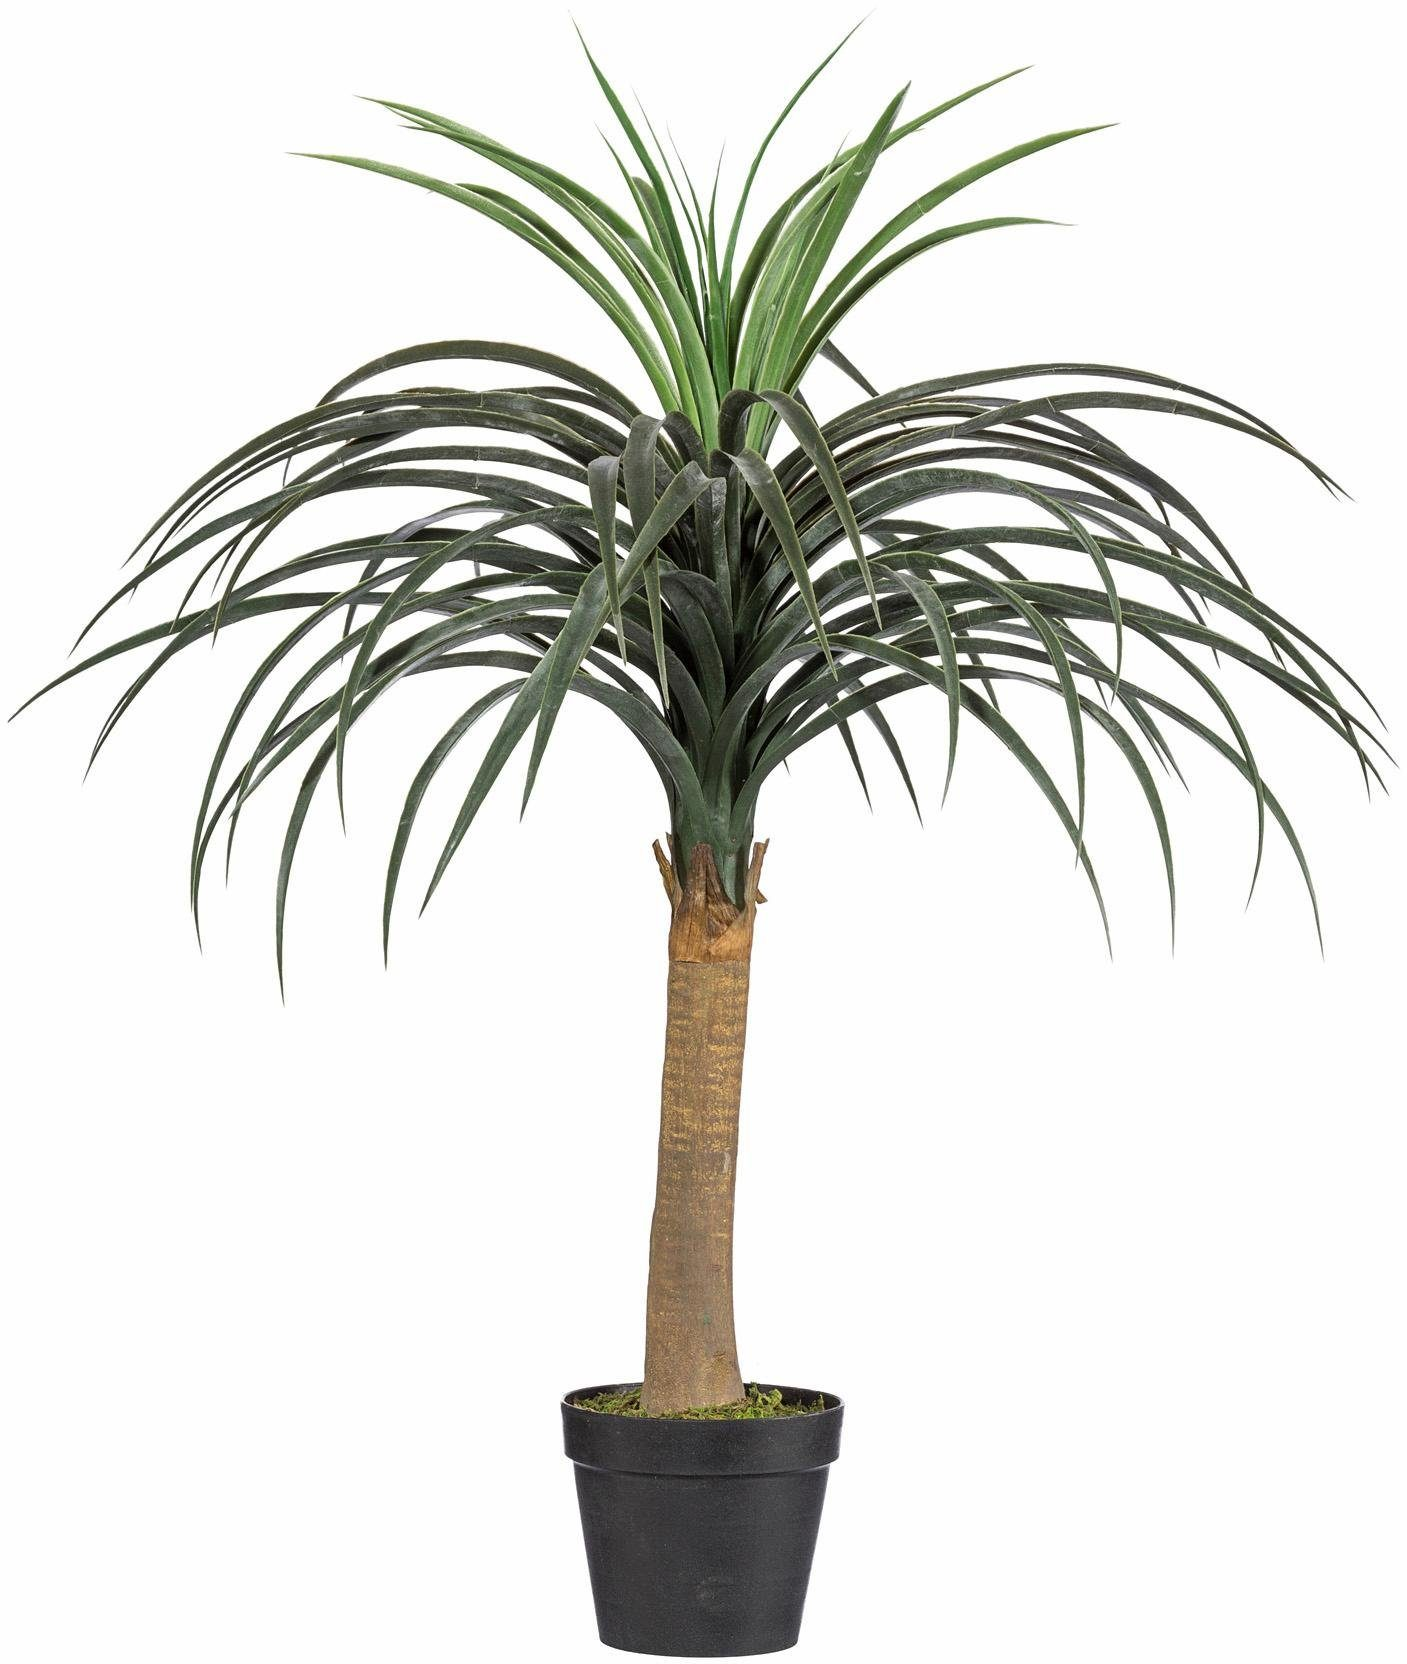 Home affaire Kunstpflanze »Dracena«